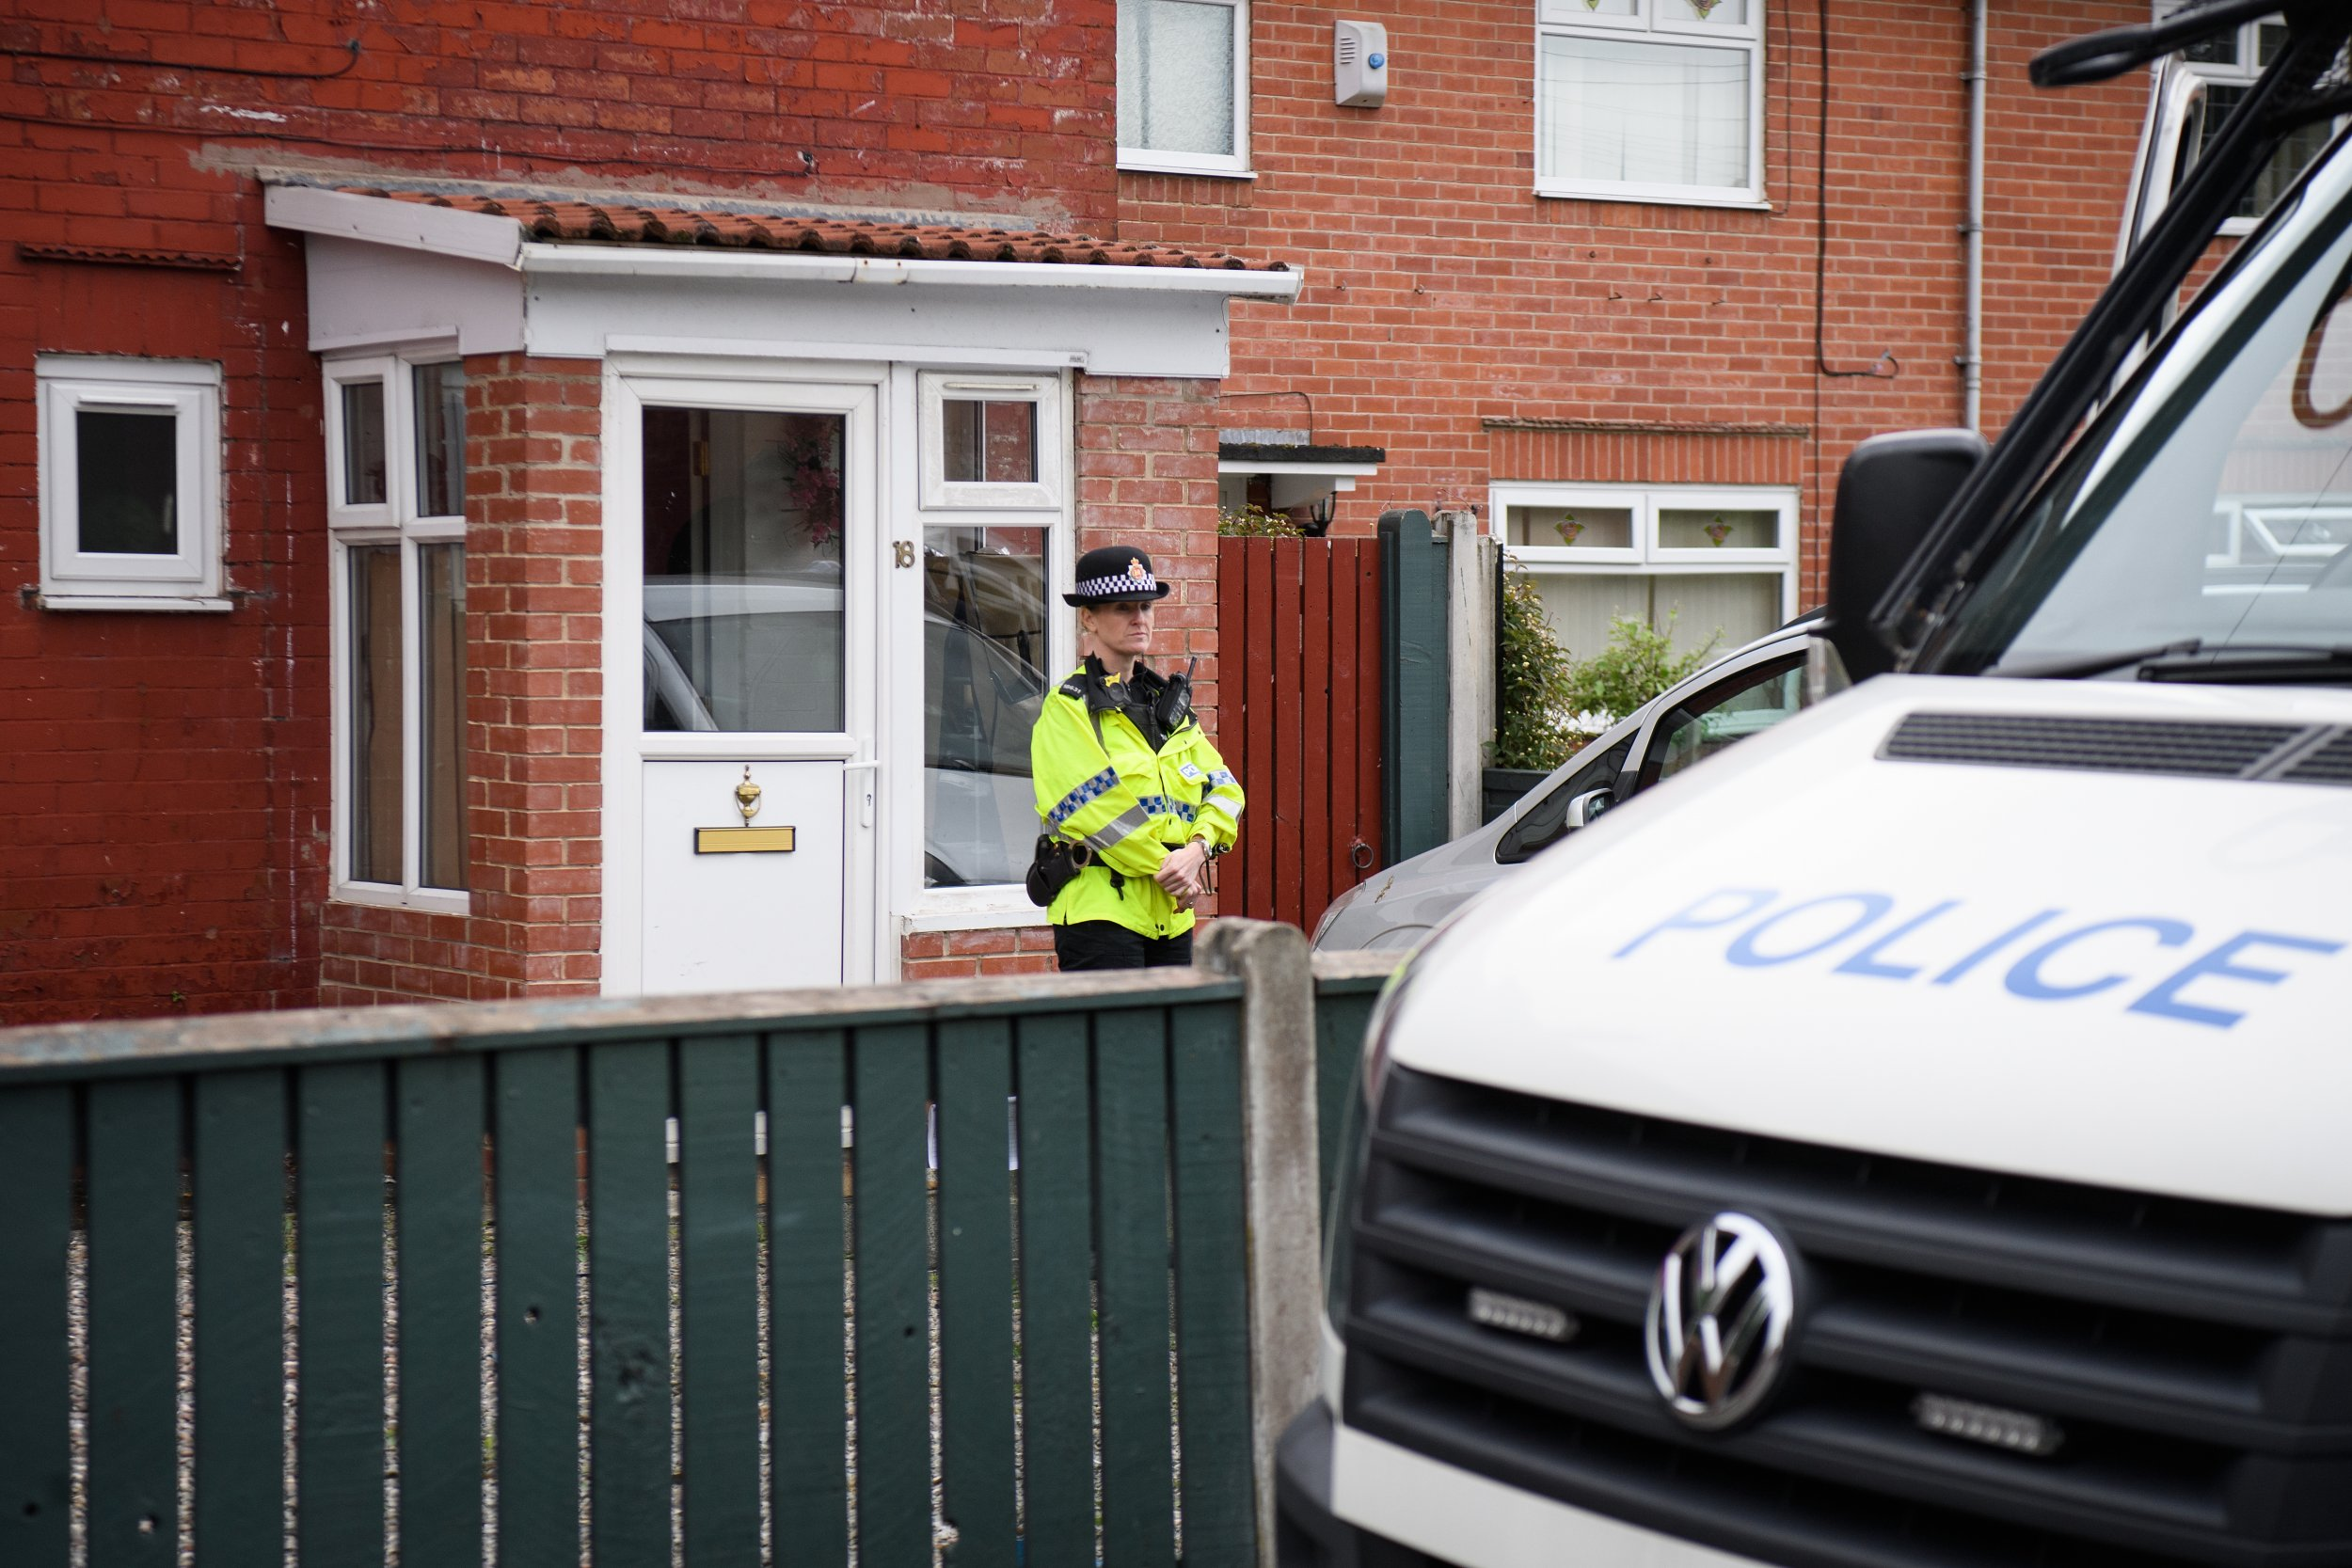 Manchester police at property